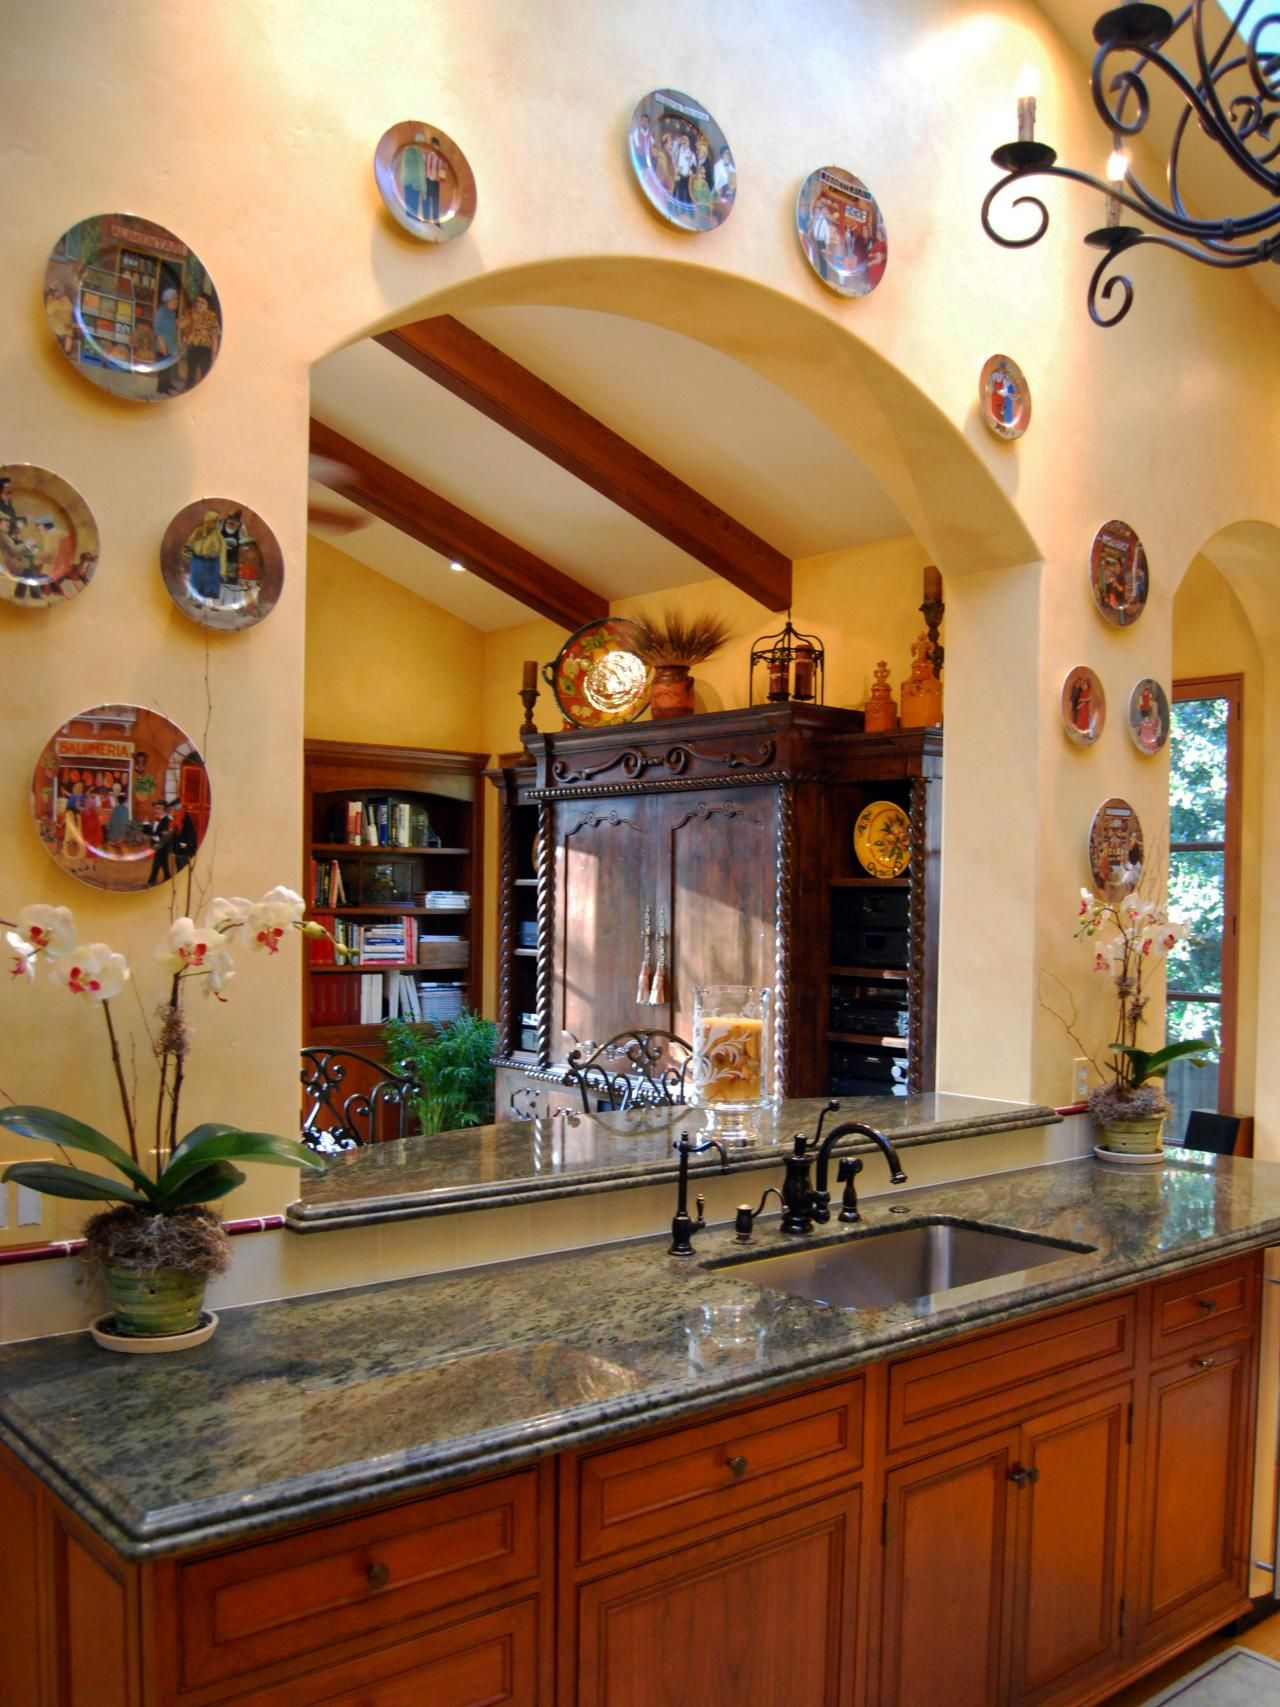 Decorative Plates Line The Border Of This Arched Kitchen Pass Through That  Looks Into The Living